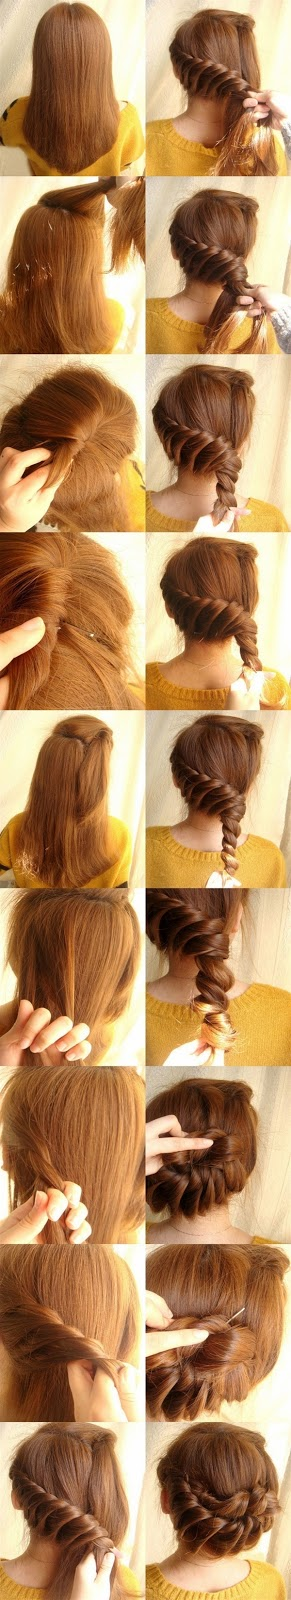 Cool Easy Hairstyles To Do At Home Step By Step Simple Diy Braided Bun